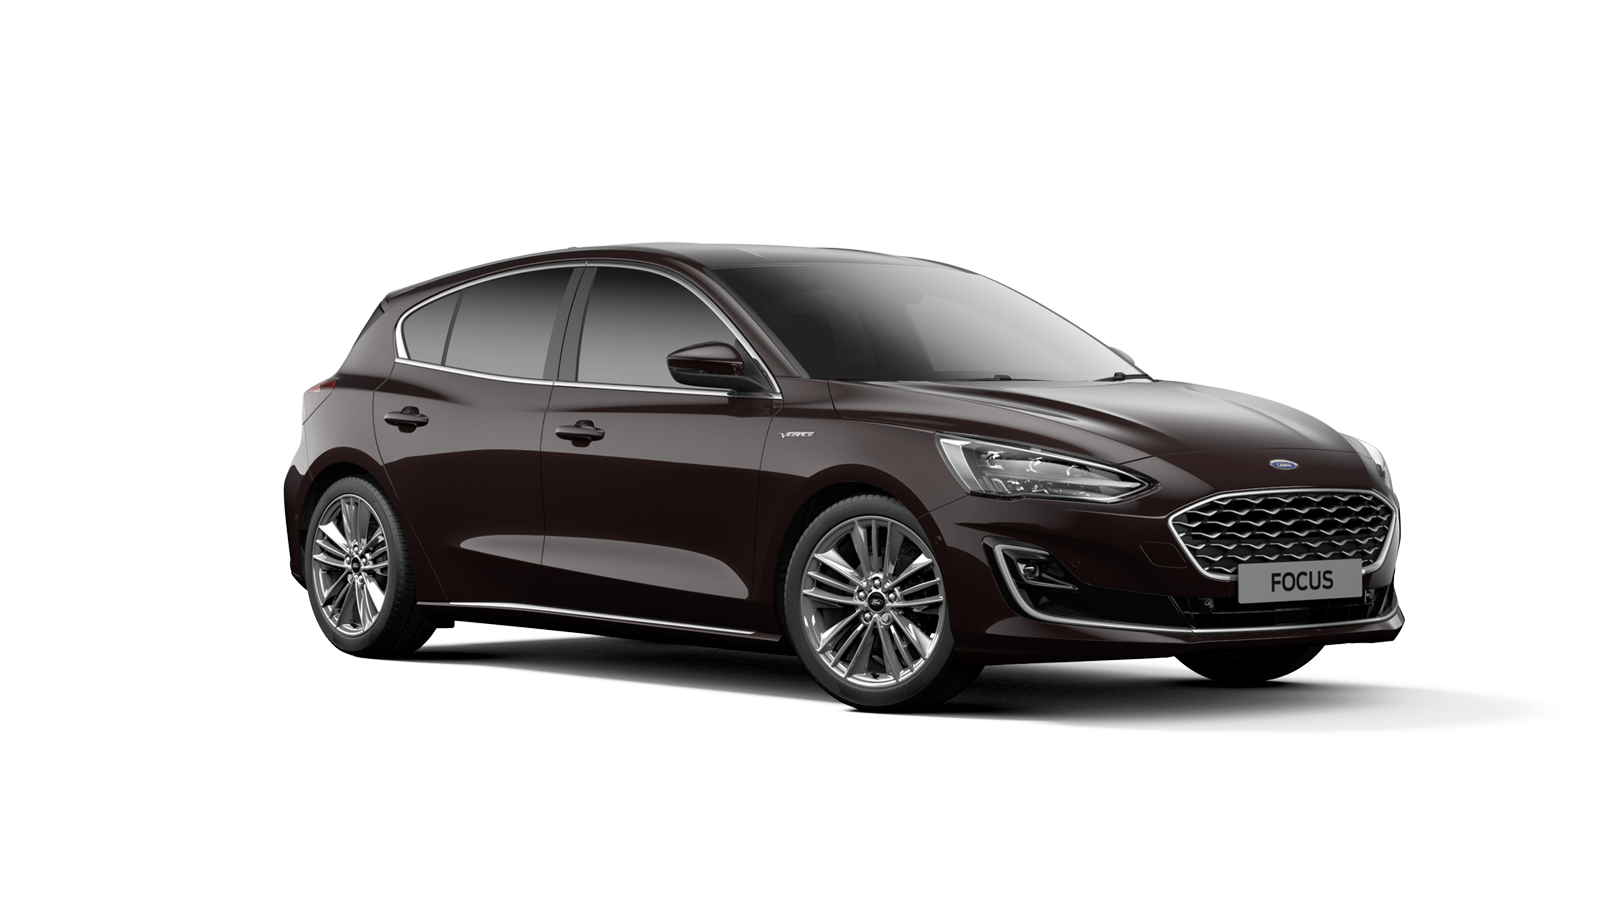 NEW FOCUS Vignale 5 Door in Dark Mulberry